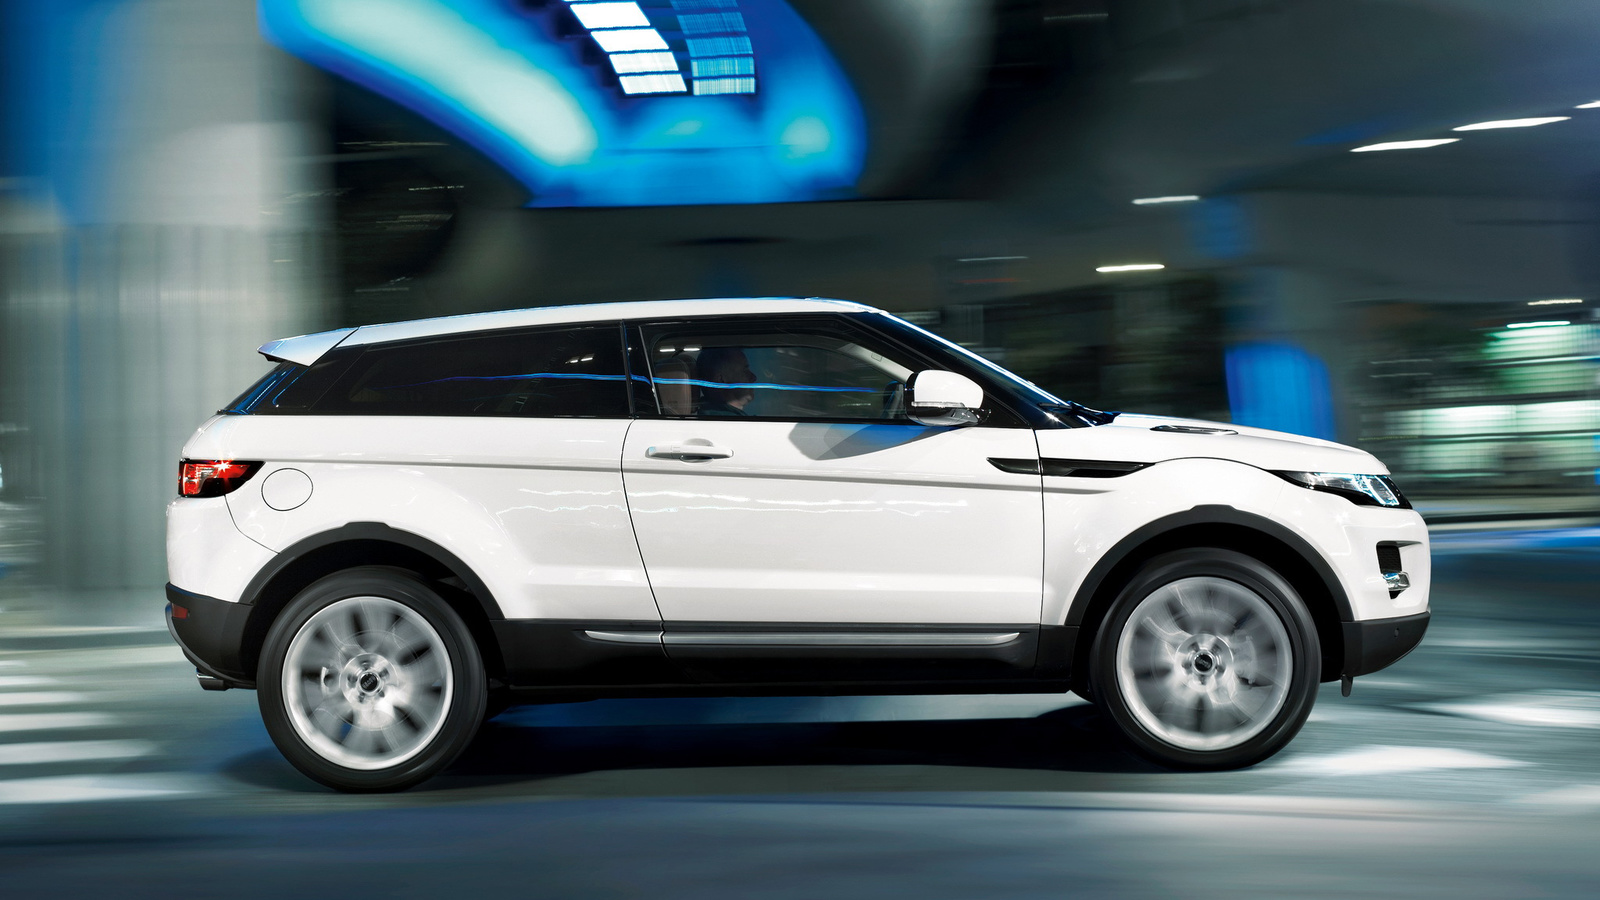 New Range Rover >> Download Wallpaper New Range Rover Evoque (1600x900). The Wallpapers, photos